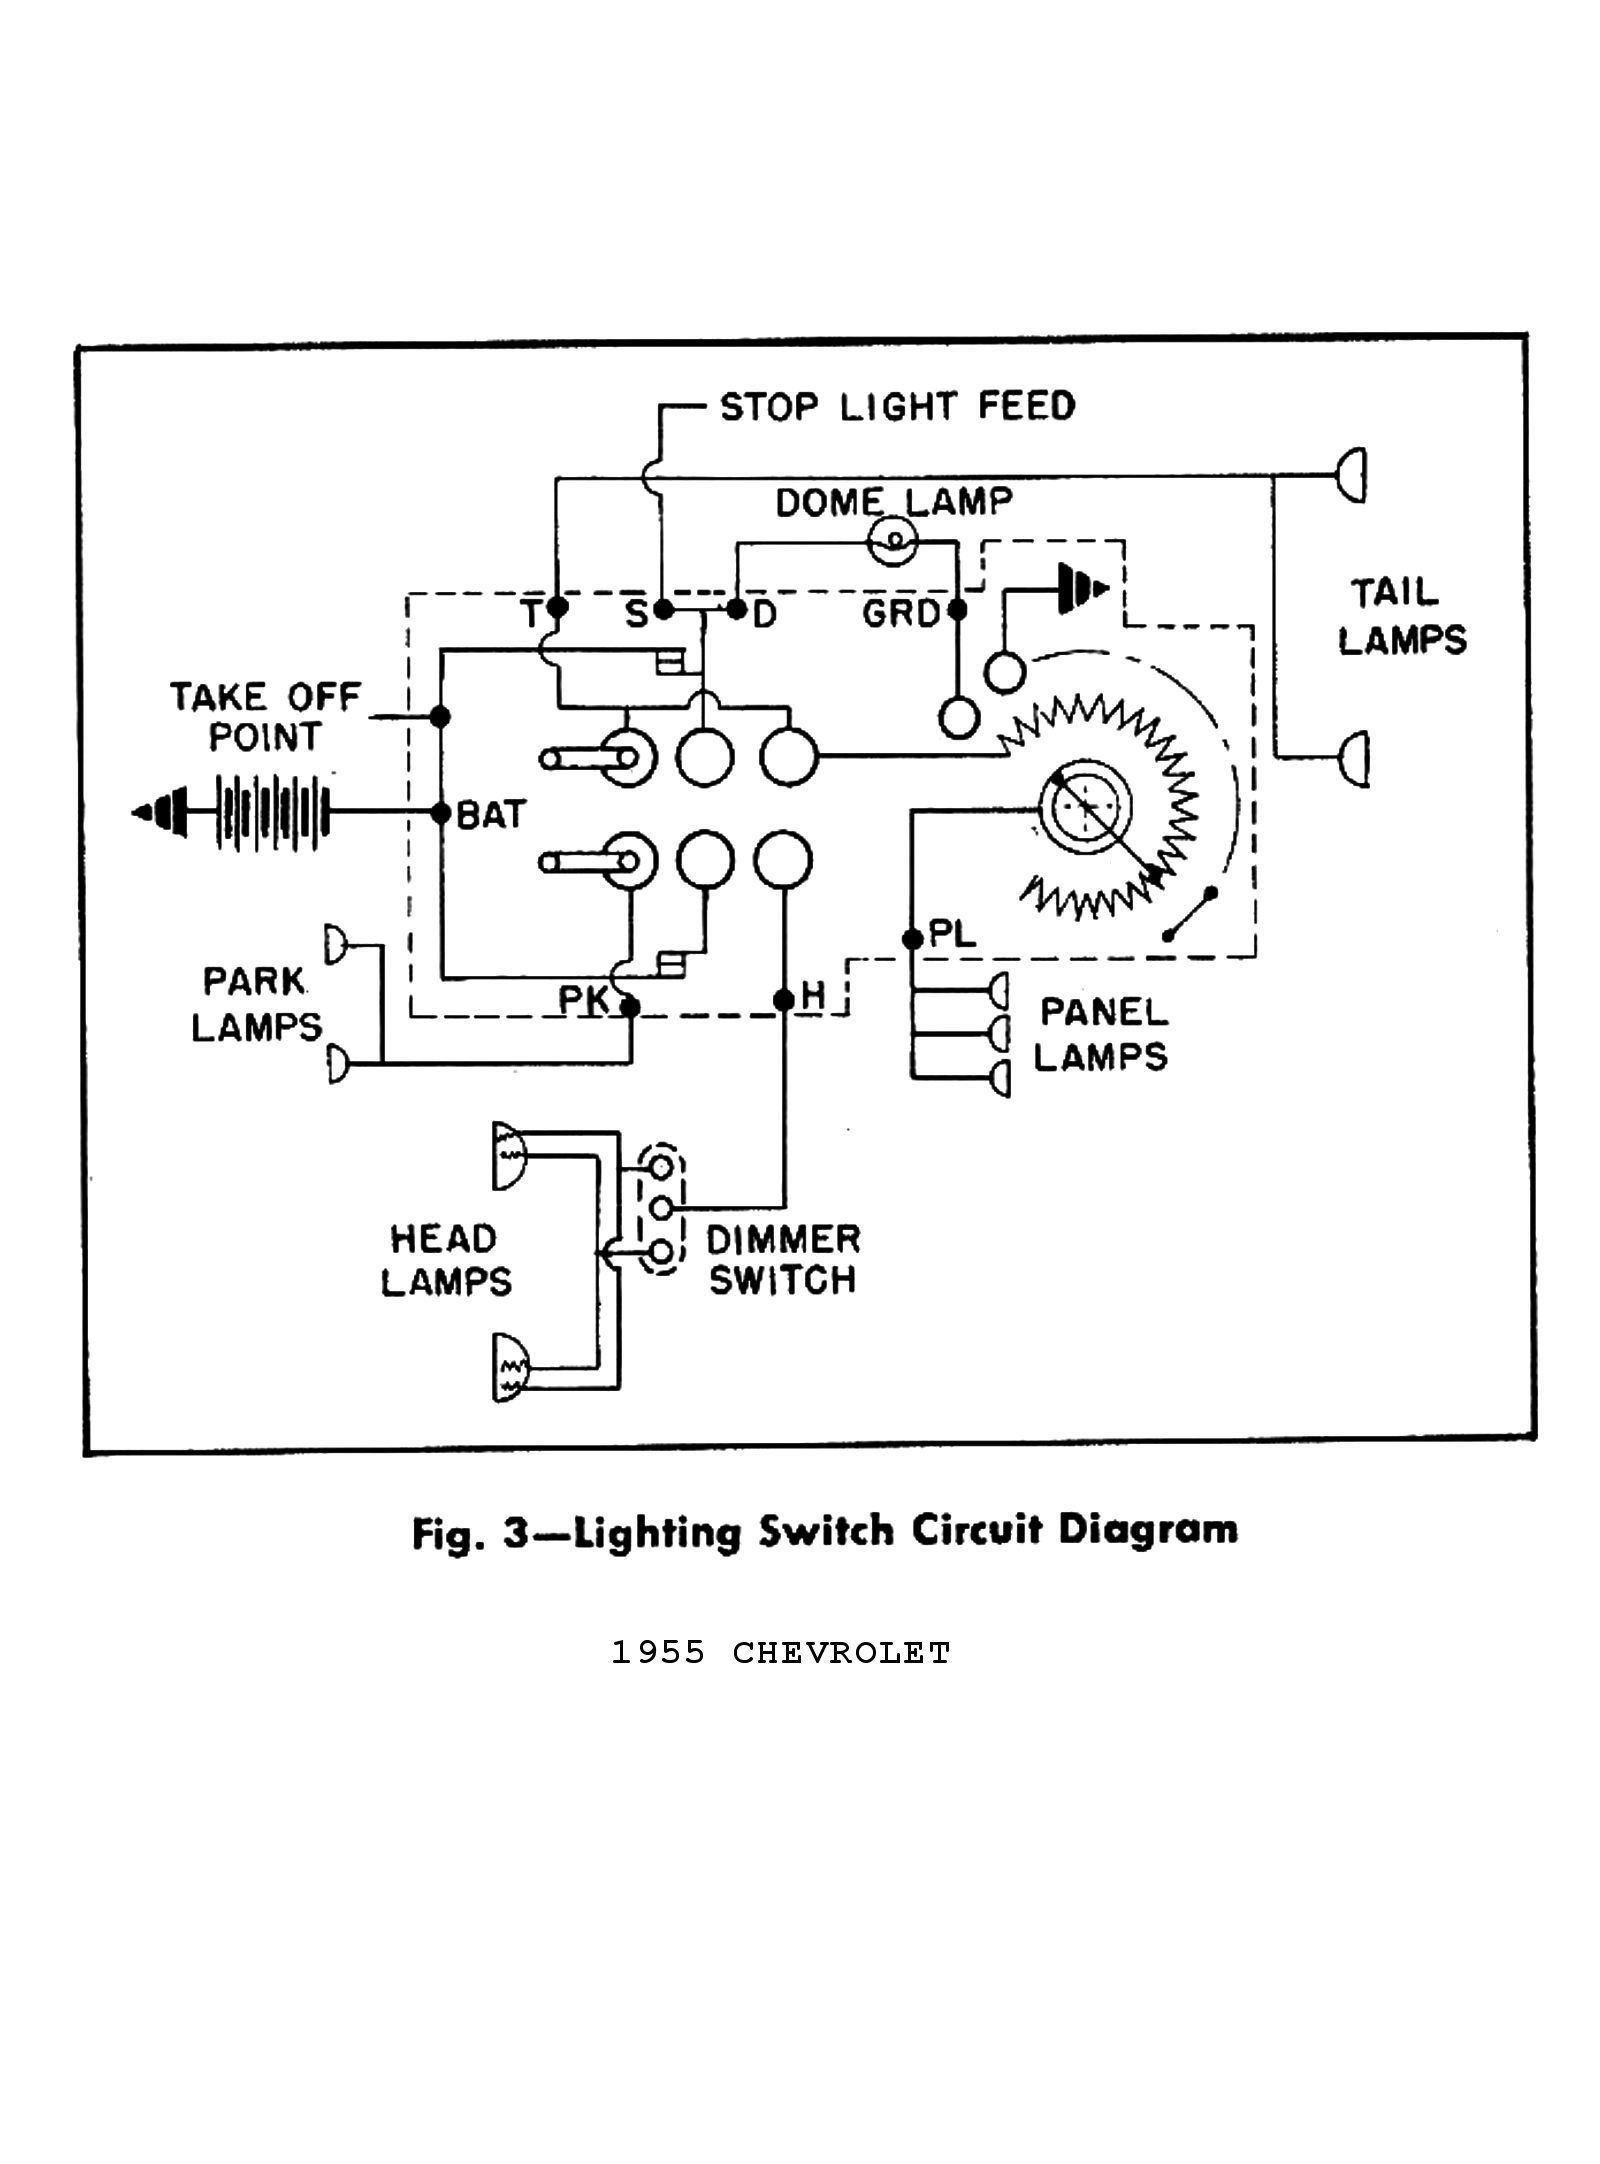 universal ignition switch wiring diagram inspirational 1955 chevy ofuniversal ignition switch wiring diagram inspirational 1955 chevy of for 1955 chevy ignition switch wiring diagram